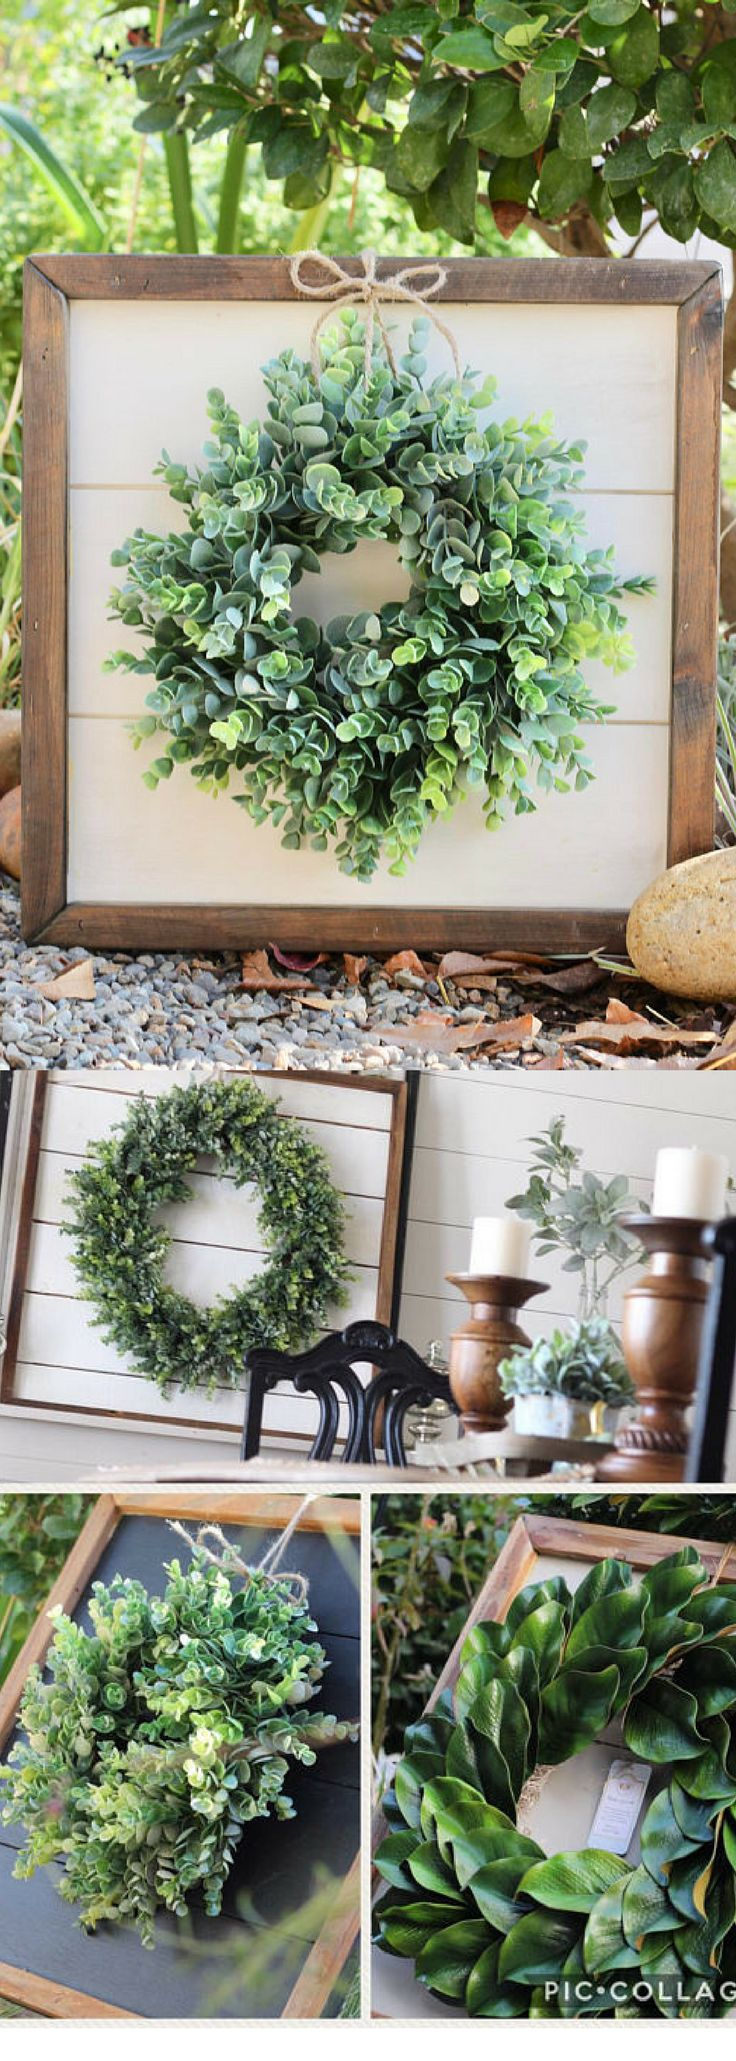 Shiplap Art & Mini Eucalyptus OR Magnolia Wreath - Small 15x15 - Reclaimed Wood - Handmade - Farmhouse - Home Decor - Custom Pieces - Spring - Fixer Upper Style - Rustic